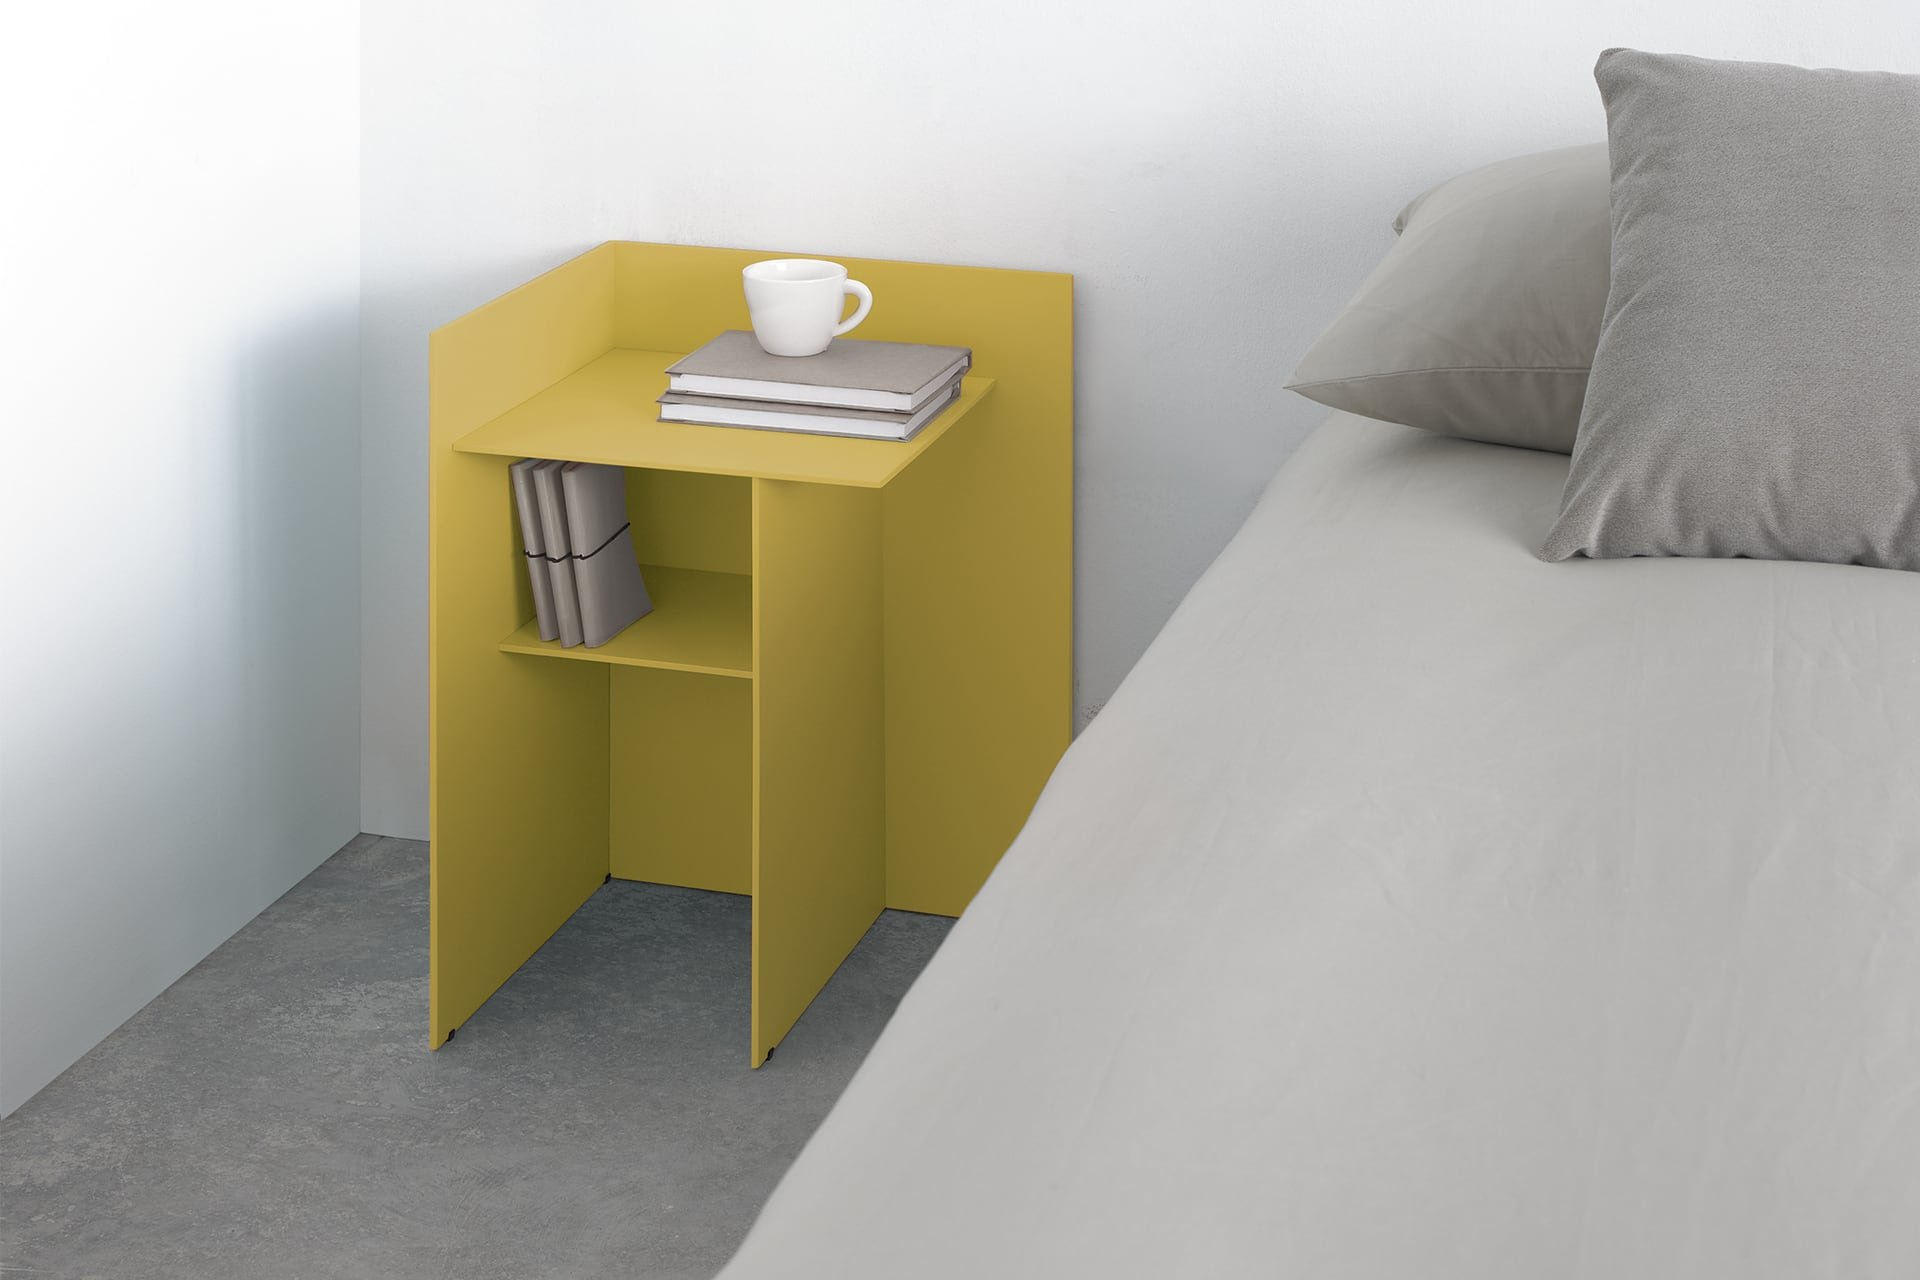 Cuatro Bedside Table end from Punt Mobles, designed by Nathan Yong